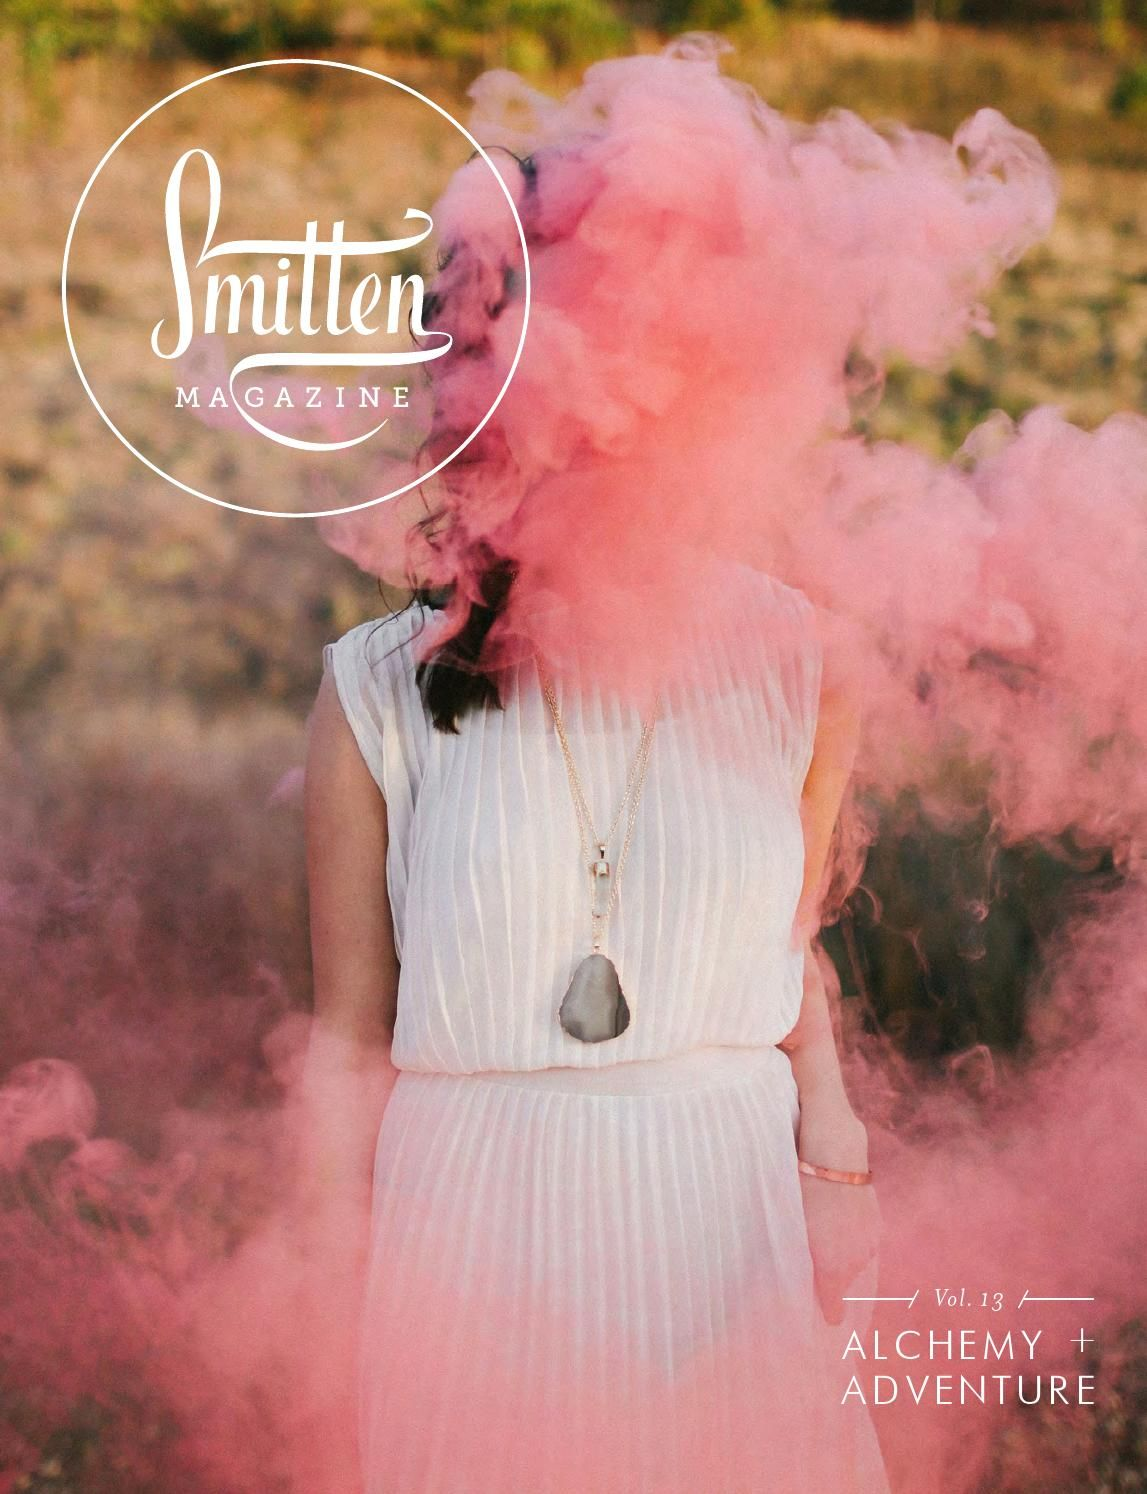 Fur + Feathers: Smitten Magazine Volume 13 January 2016 Page 90 - 9 / Flowers by Christy Hulsey for Colonial House of Flowers with Harwell Photography, Design Studio South, Pottery Barn, Cameron Hughes Wine,